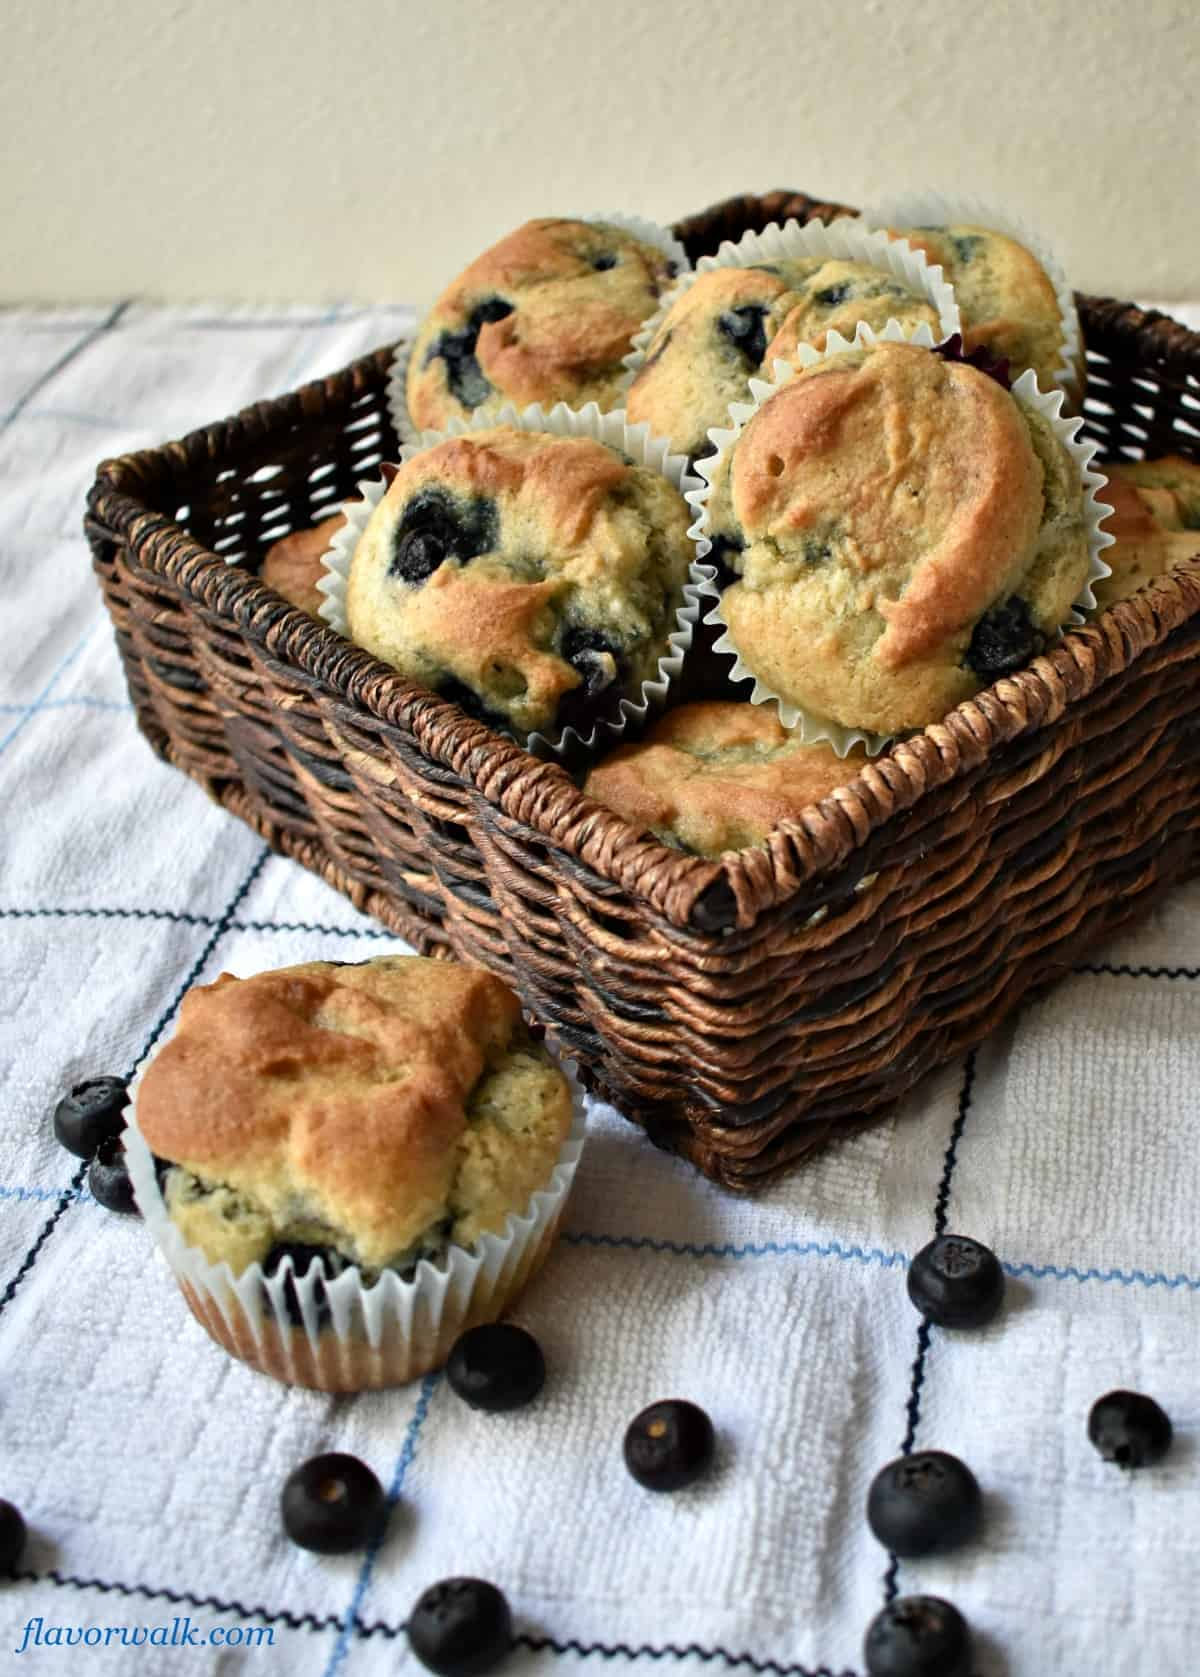 Easy Gluten Free Blueberry Muffins in a basket | Flavor Walk